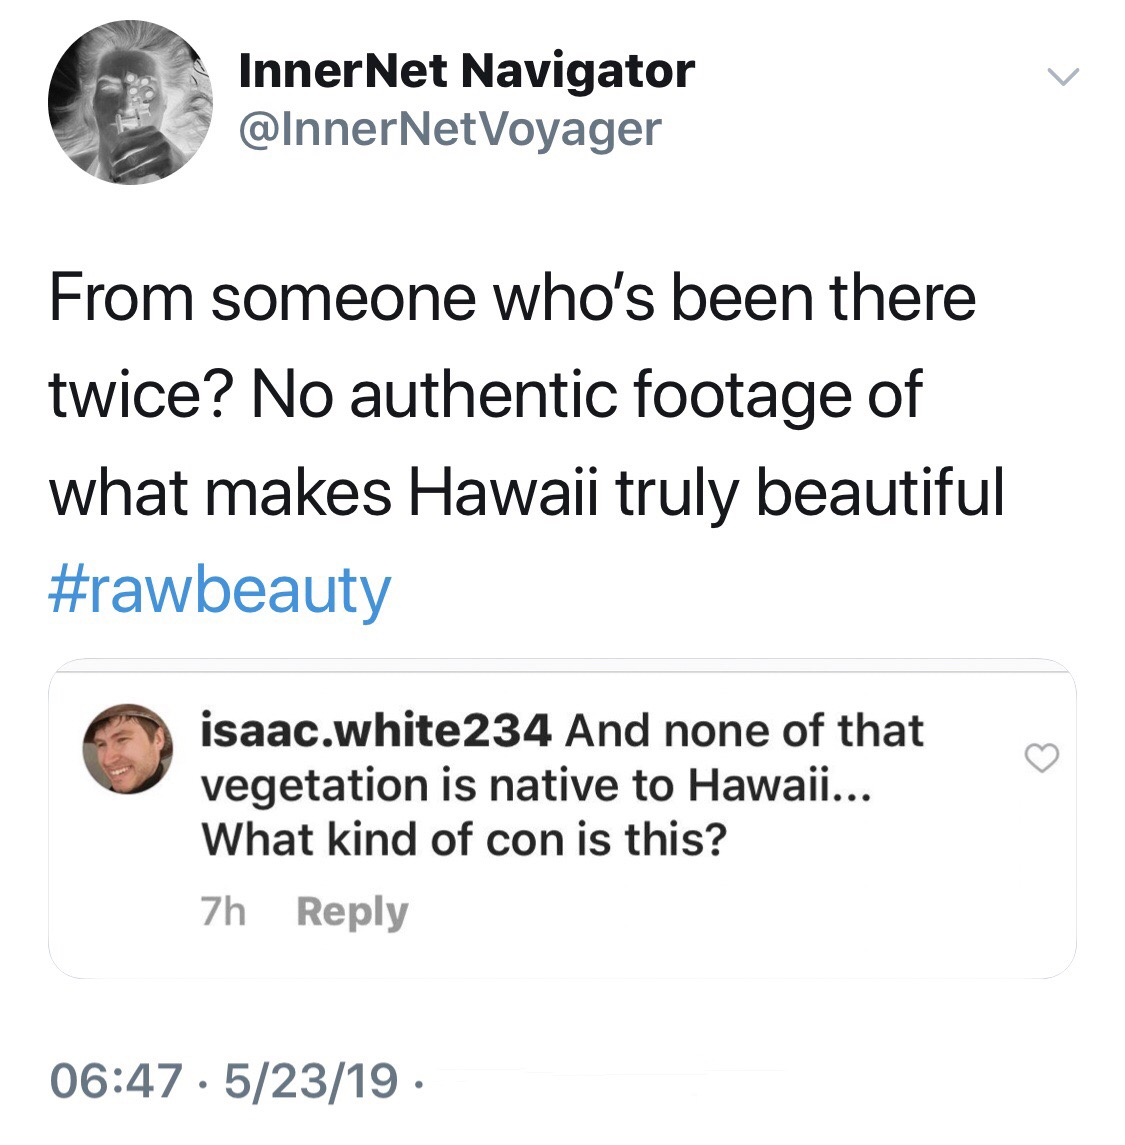 IMAGES: archived tweet + illustration of an outlier who questions his Hawaiian experience in his comment to JS's Surfing the landscape video at their Hawaiian resort